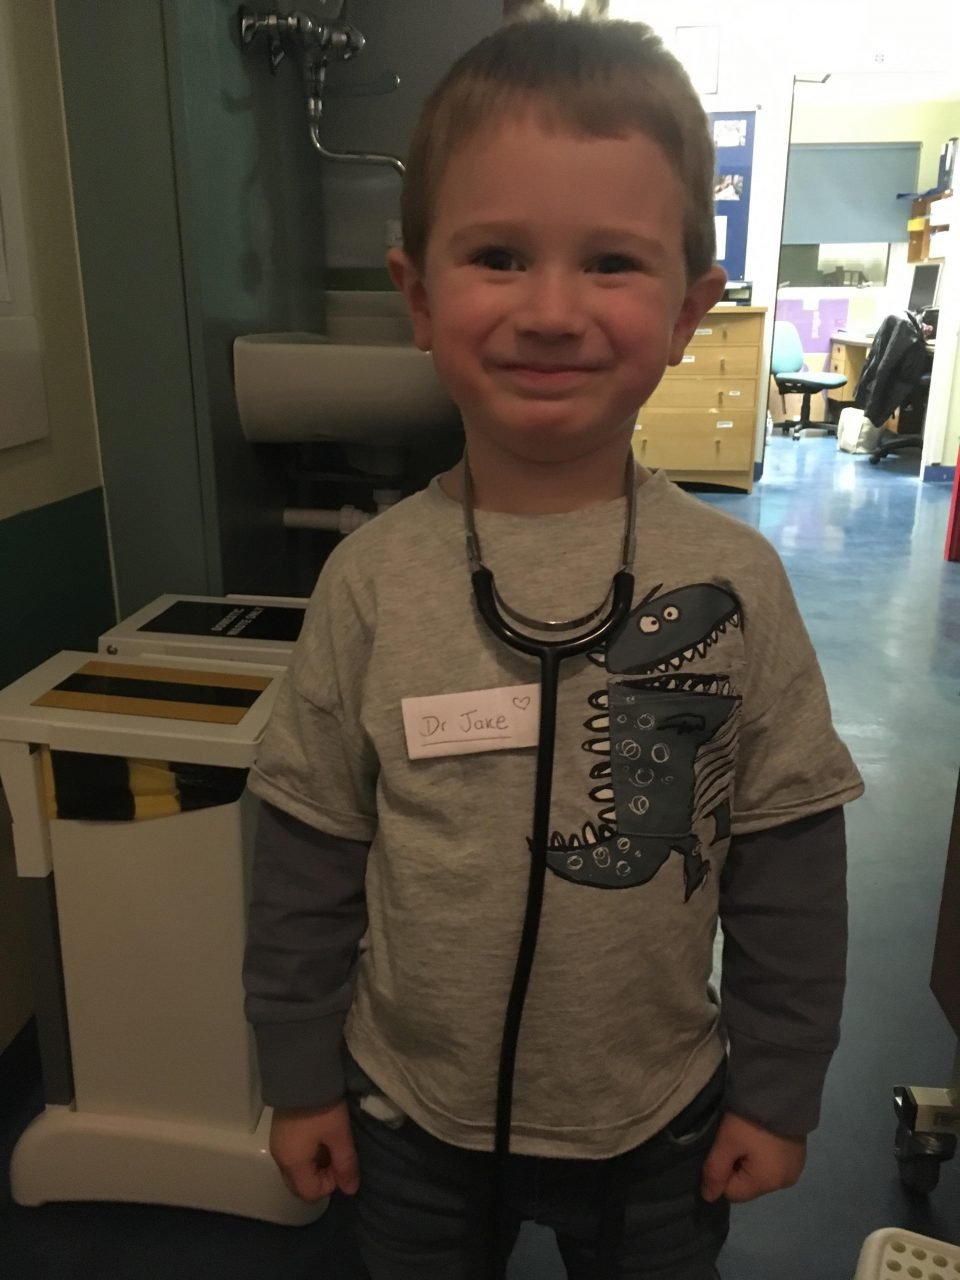 Doctor Jake. The nurses put a stethoscope on him and gave him a name badge